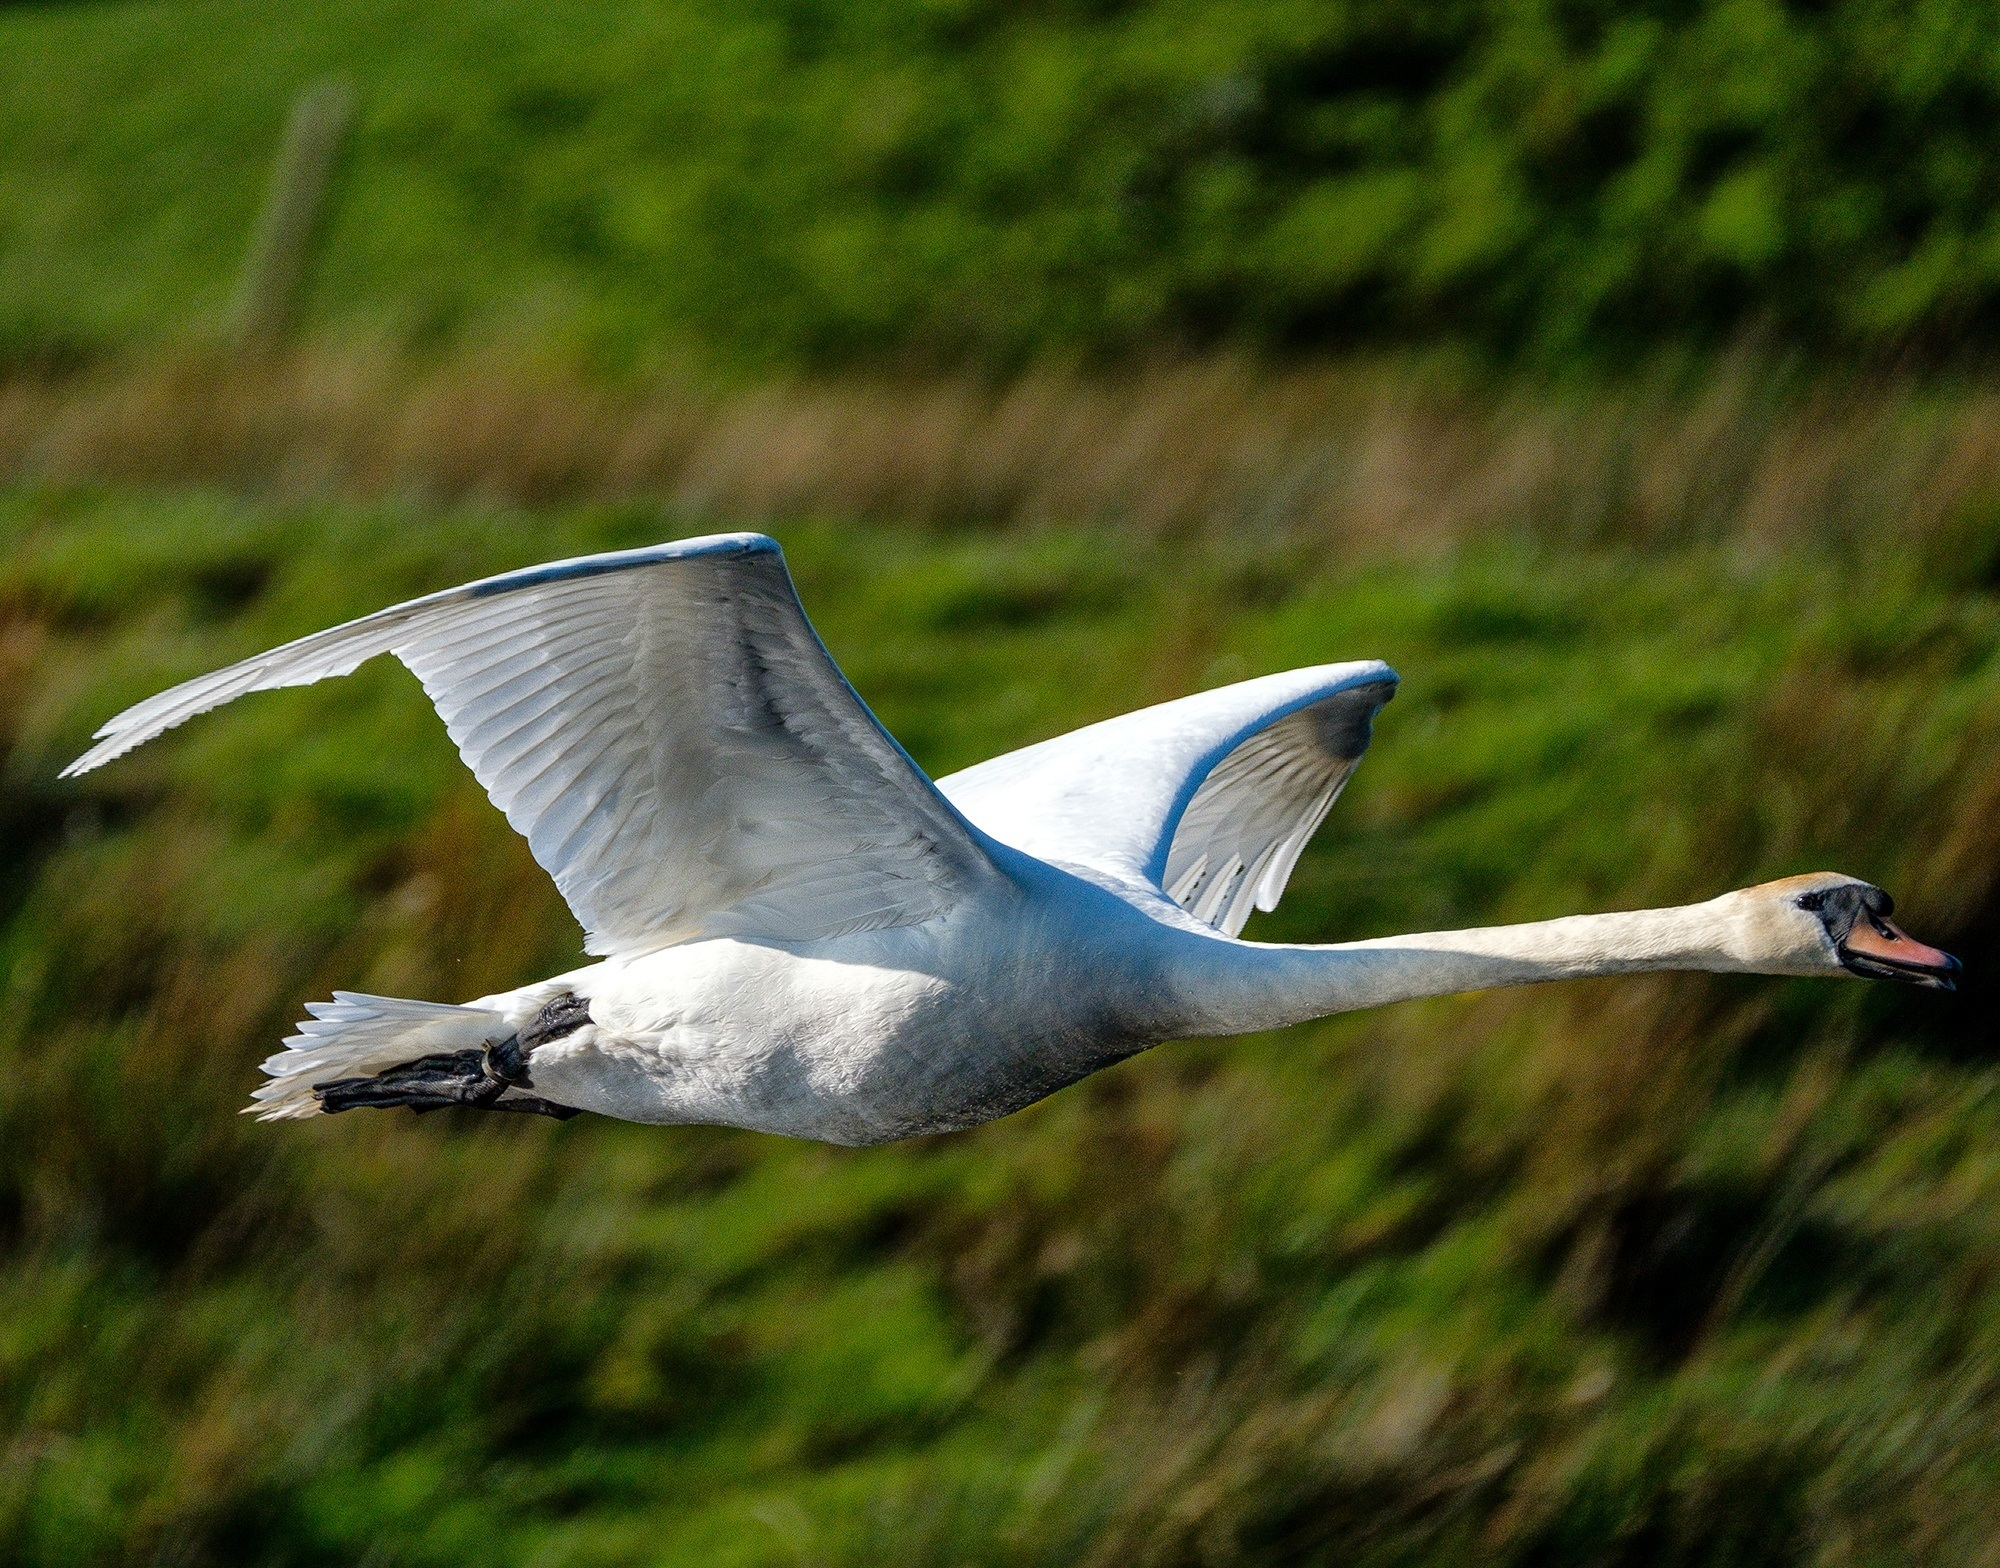 Mute Swan in Flight, Clyde Valley, Scotland - XH1 + 100-400mm